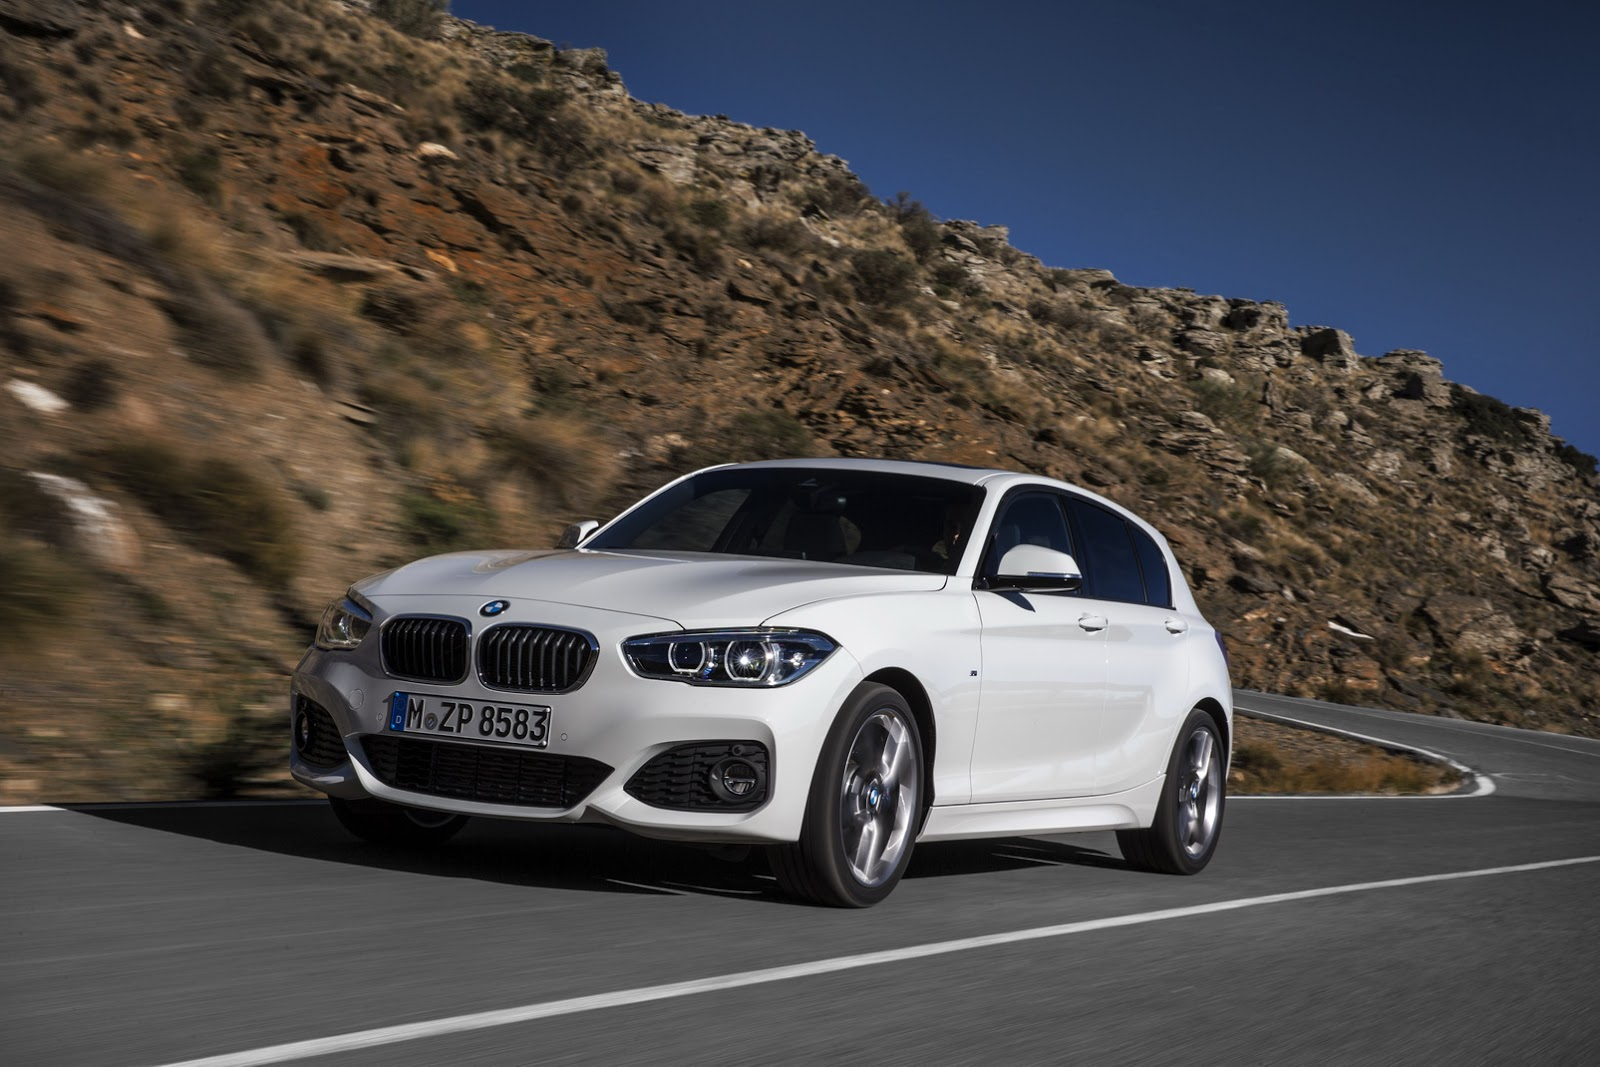 2016 bmw 1 series facelift this is it in 100 photos w. Black Bedroom Furniture Sets. Home Design Ideas